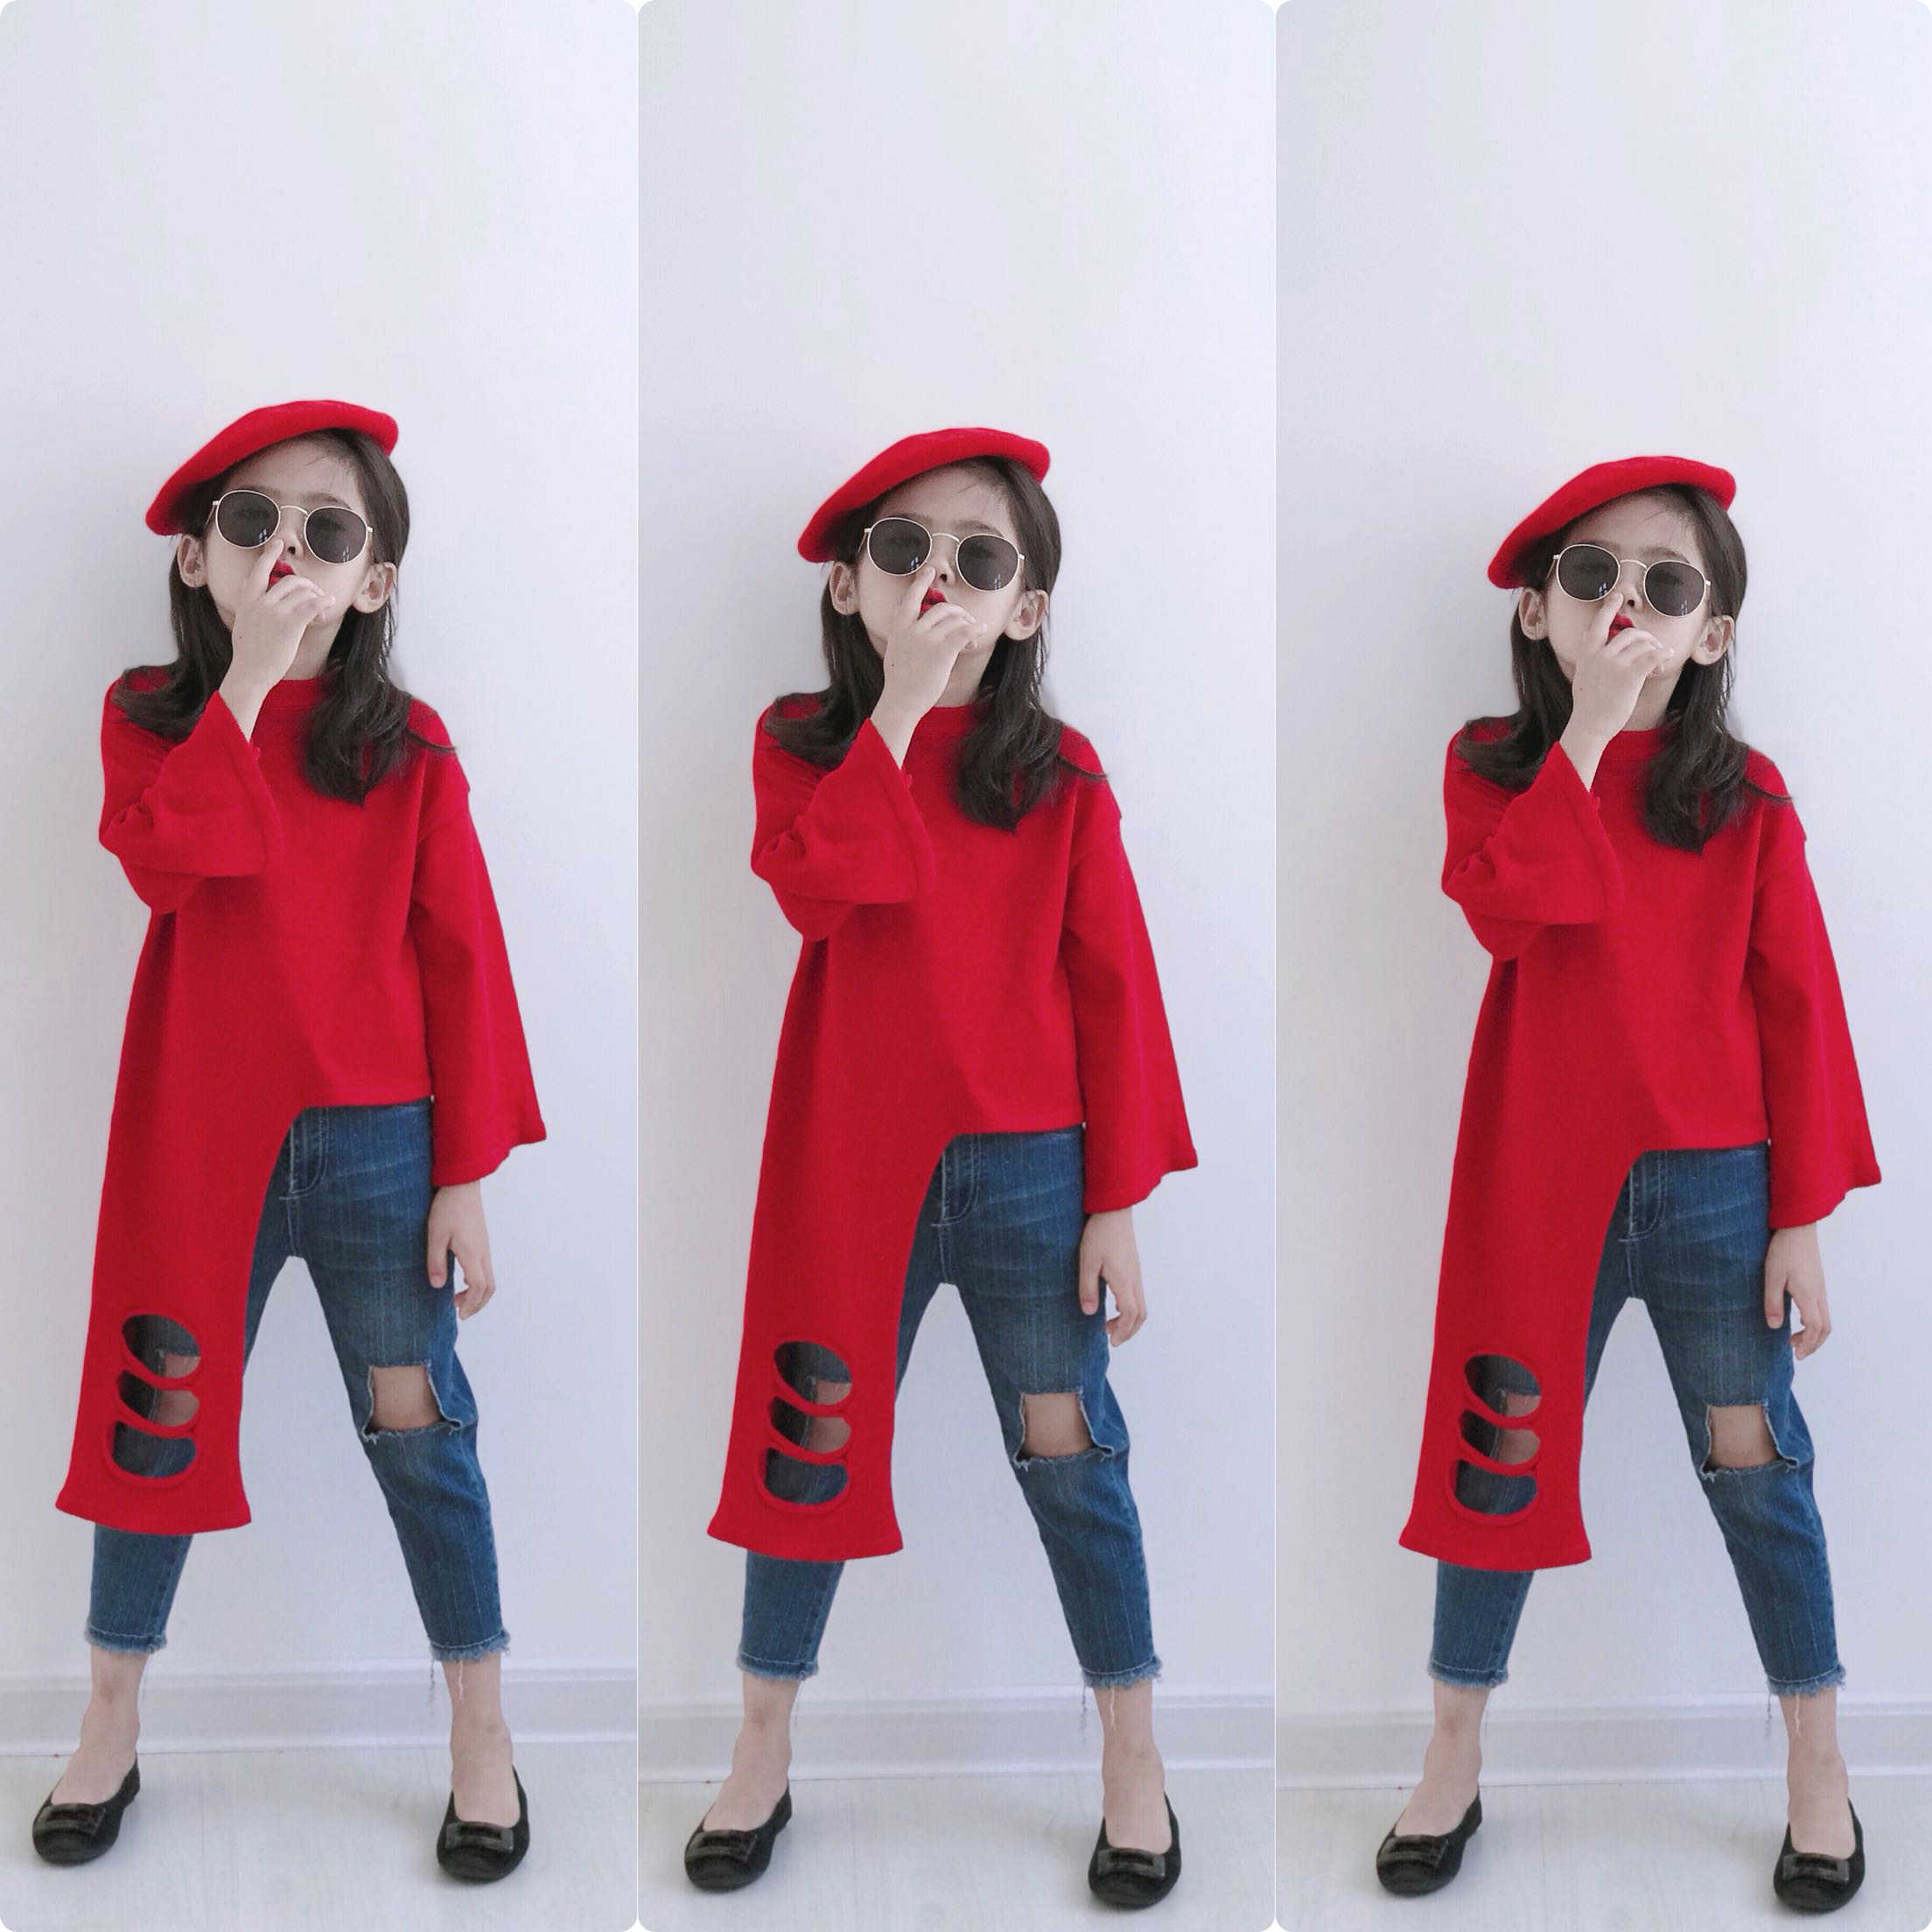 Spring Autumn girls sweater baby knitwear kids tops children knitted irregular streetwear hole hollow out wide sleeve 2 to 10 yr